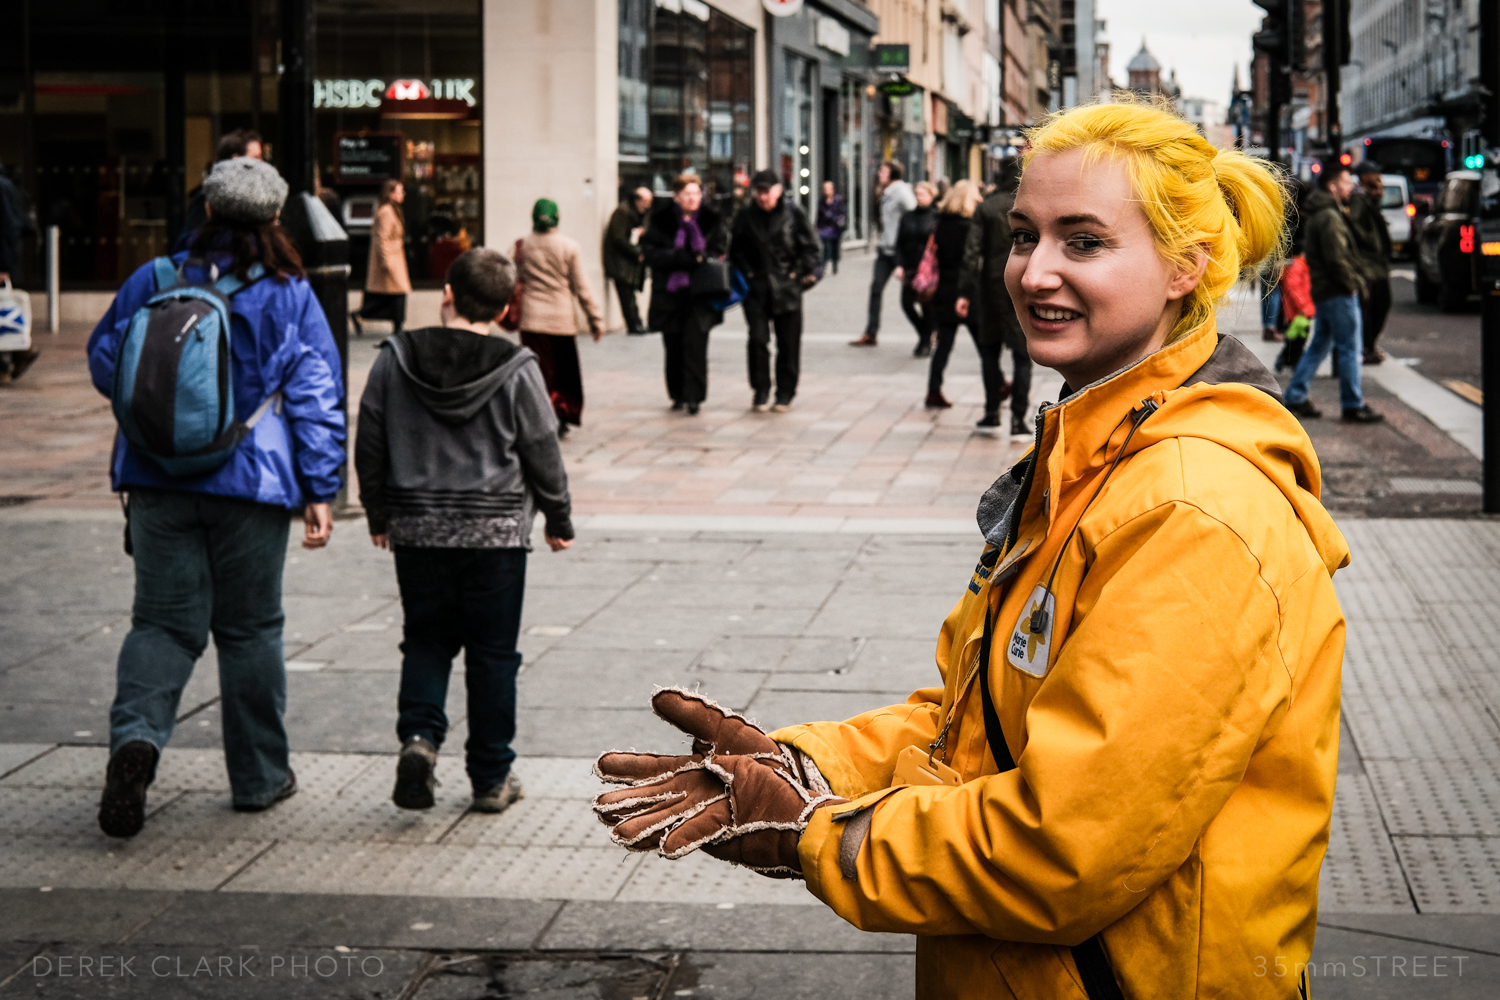 021_35mmStreet-Glasgow-Scotland-Feb-2019.jpg